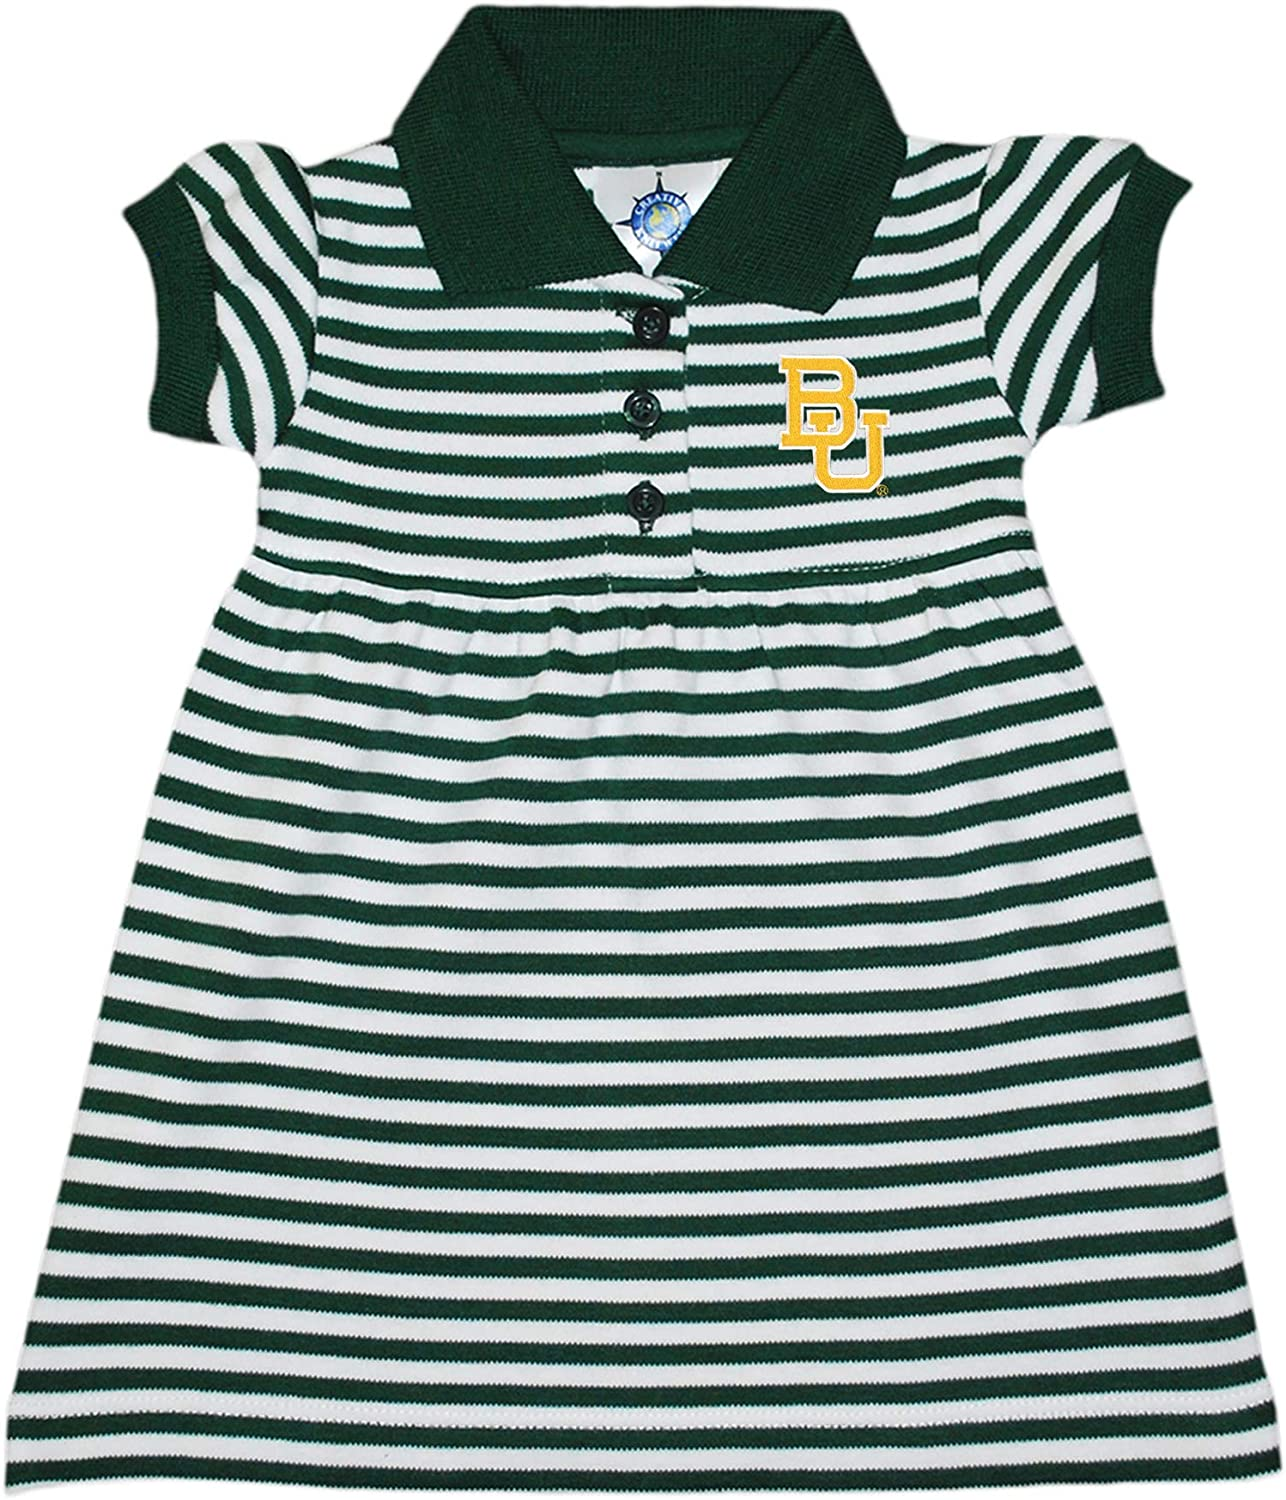 Baylor Challenge the lowest price of Japan University Seasonal Wrap Introduction Bears Striped Game with Day Dress Bloomer